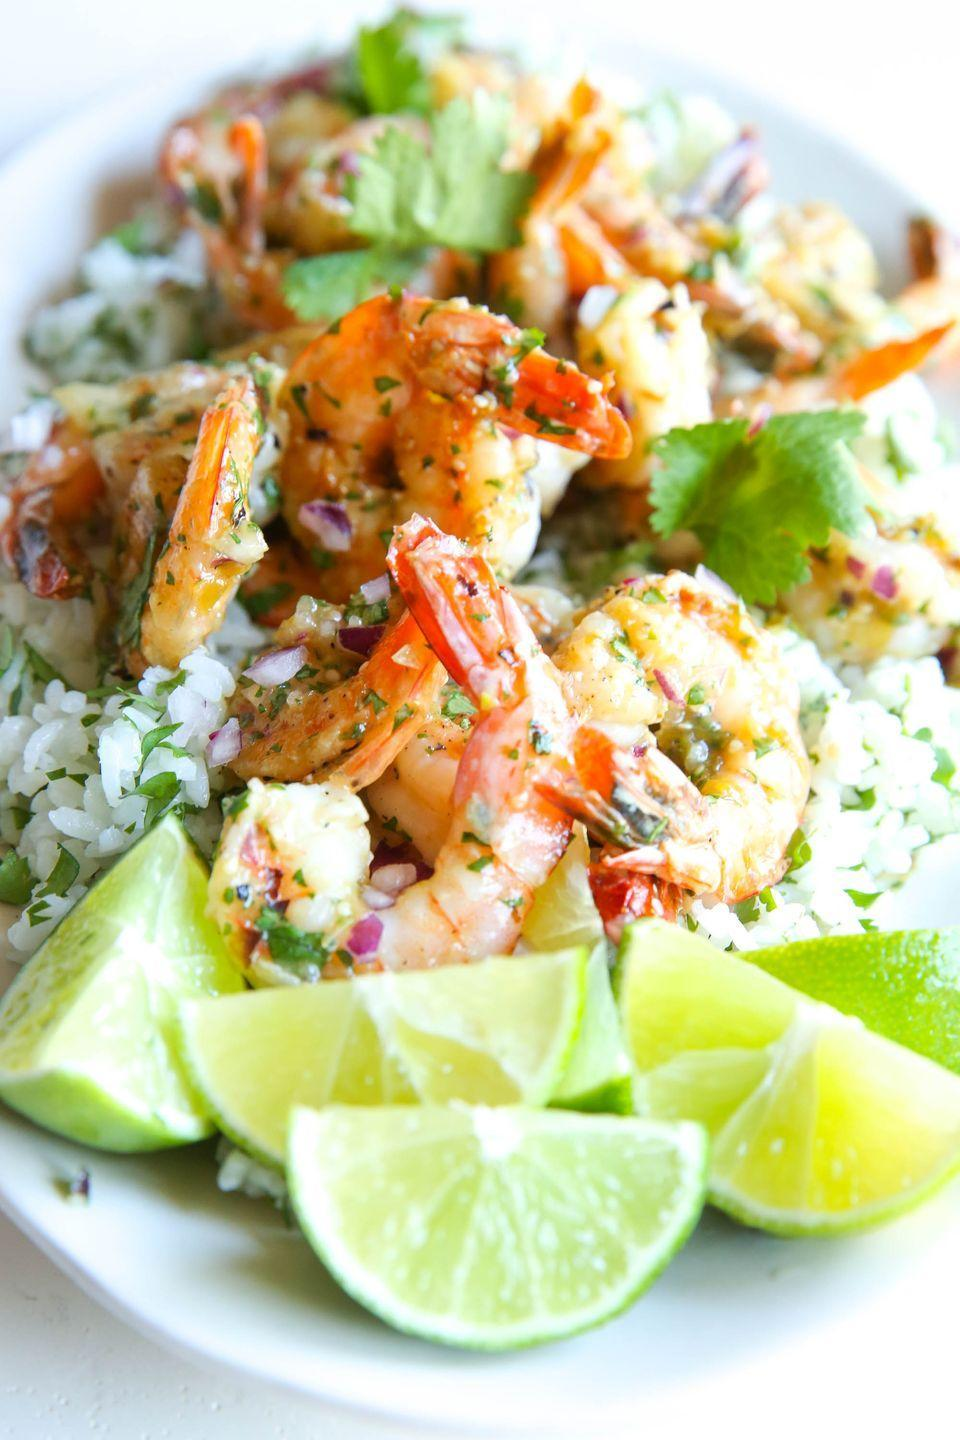 """<p>Watch your back, Chipotle.</p><p><span class=""""redactor-invisible-space"""">Get the recipe from <a href=""""https://www.delish.com/cooking/recipe-ideas/recipes/a51161/salsa-verde-shrimp-with-cilantro-rice-recipe/"""" rel=""""nofollow noopener"""" target=""""_blank"""" data-ylk=""""slk:Delish"""" class=""""link rapid-noclick-resp"""">Delish</a>.</span></p>"""